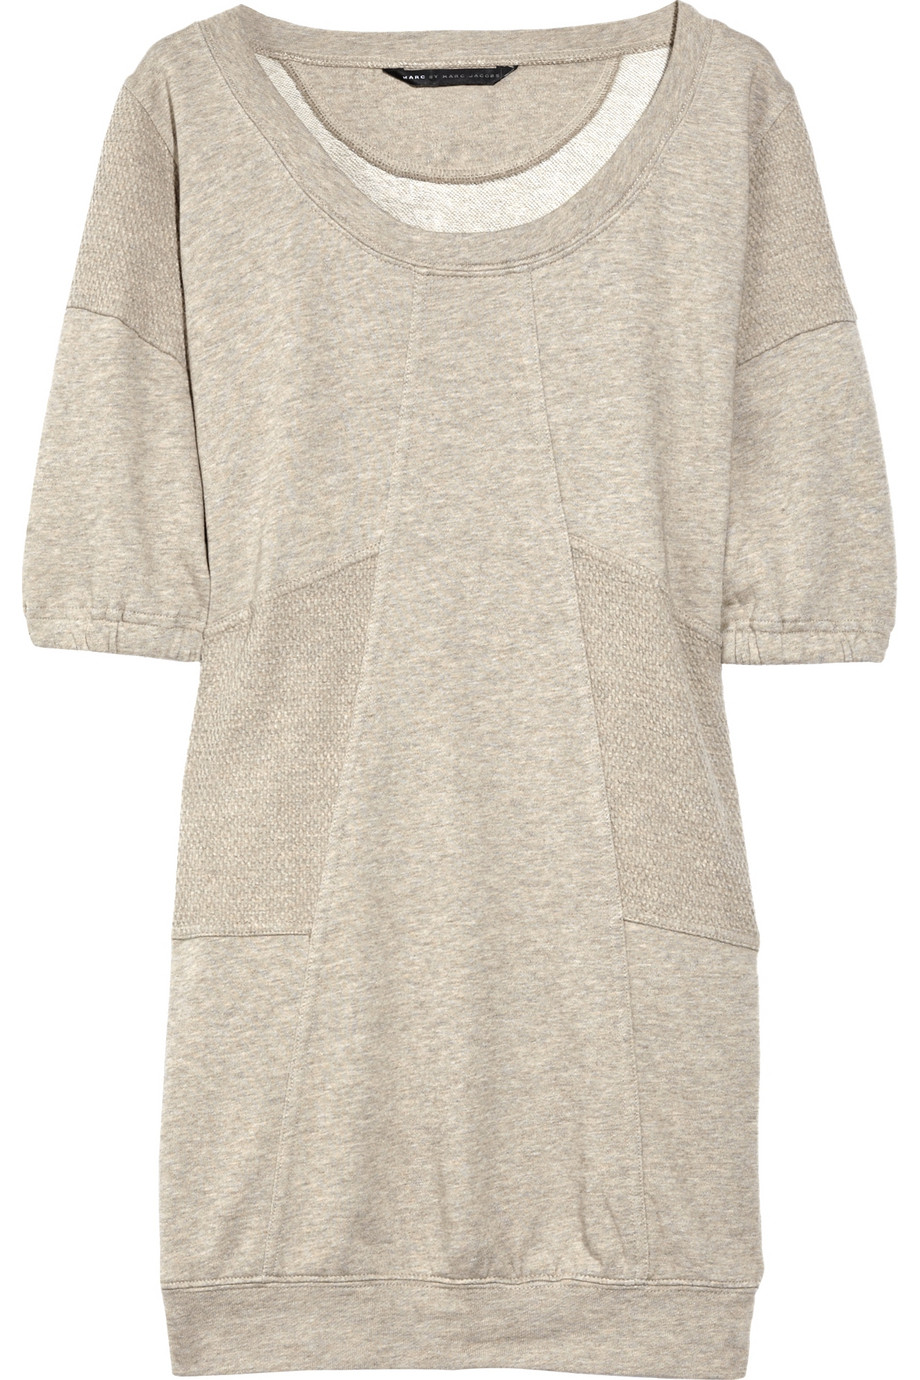 Marc by marc jacobs Liz Cotton Sweater Dress in Natural | Lyst